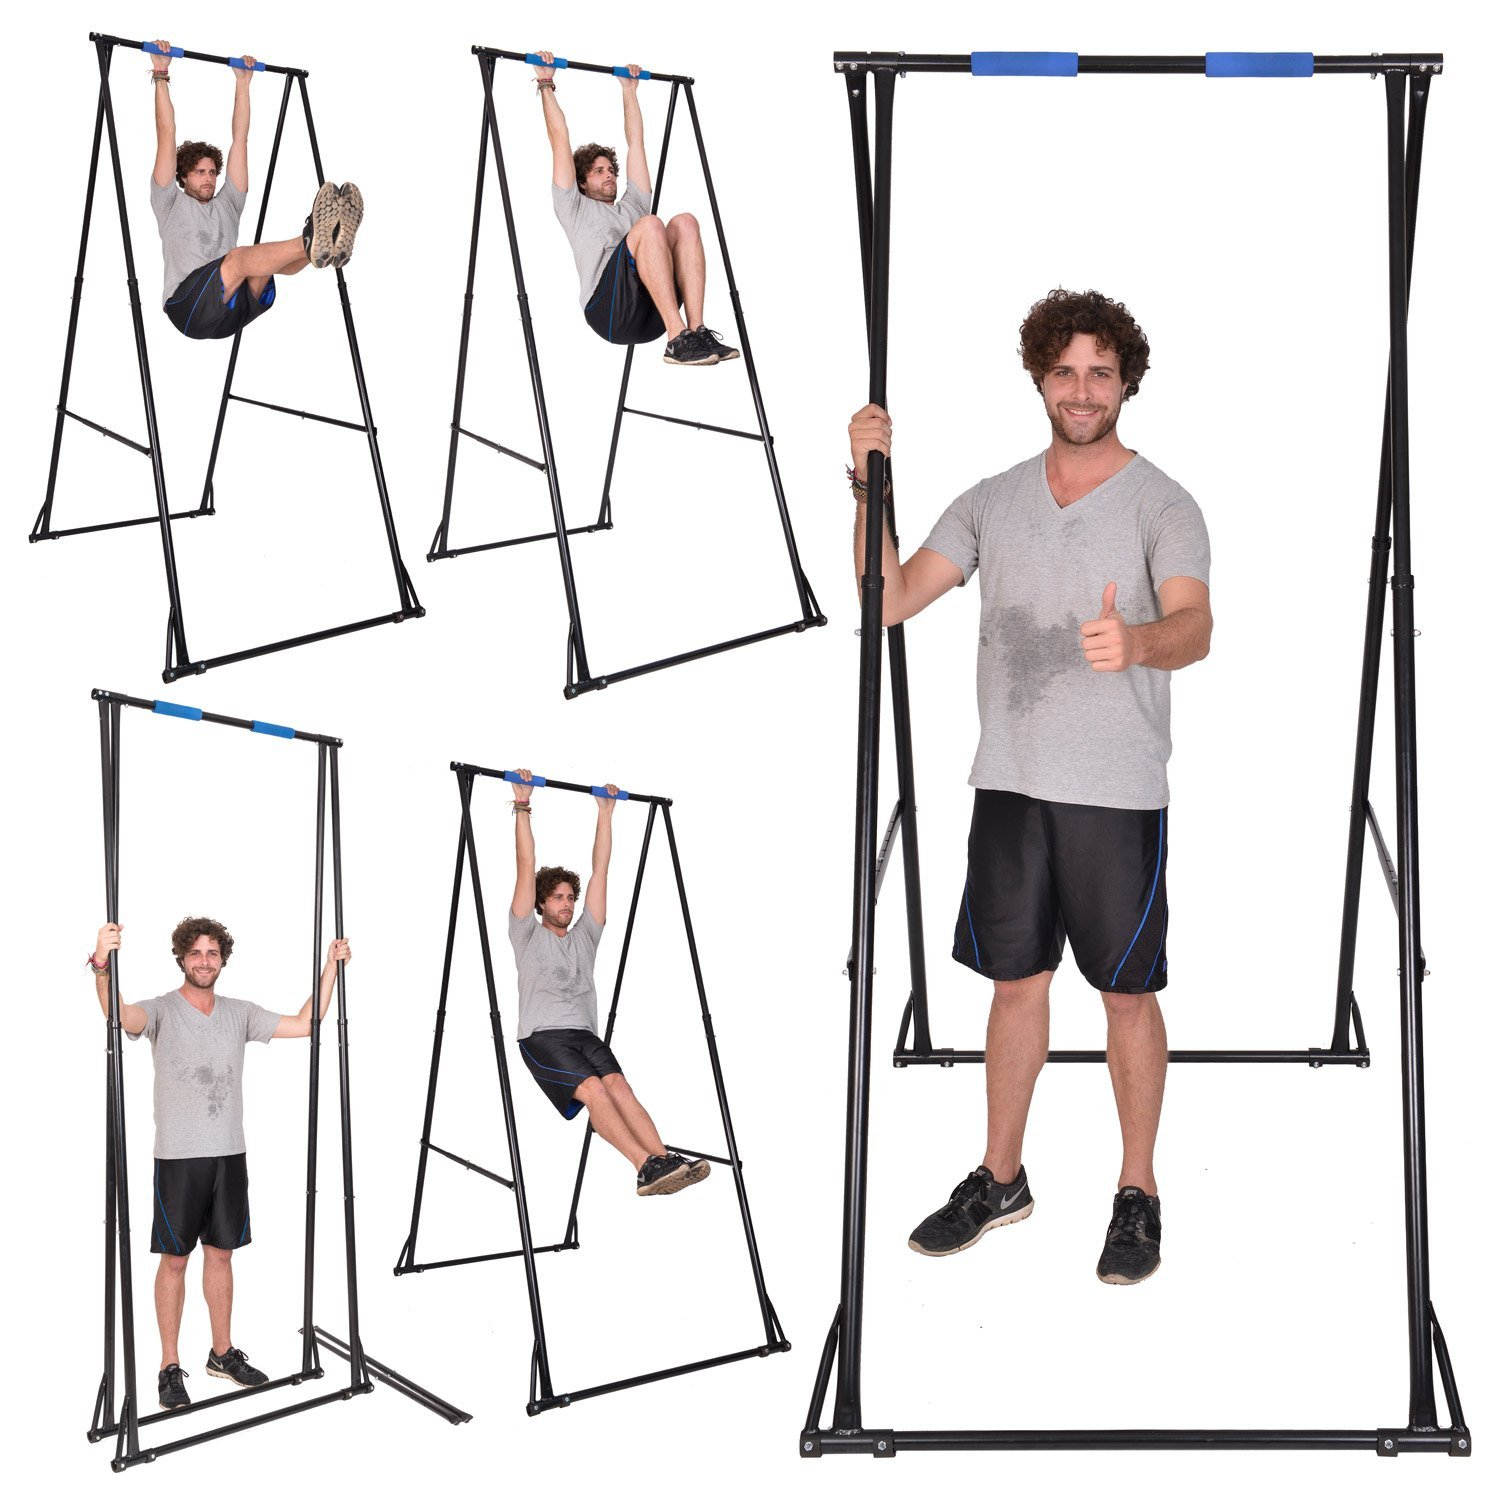 3254341d553 Free Standing Pull Up Bar Indoor Outdoor KT1.1520 Foldable Portable  Adjustable Pullup tower for